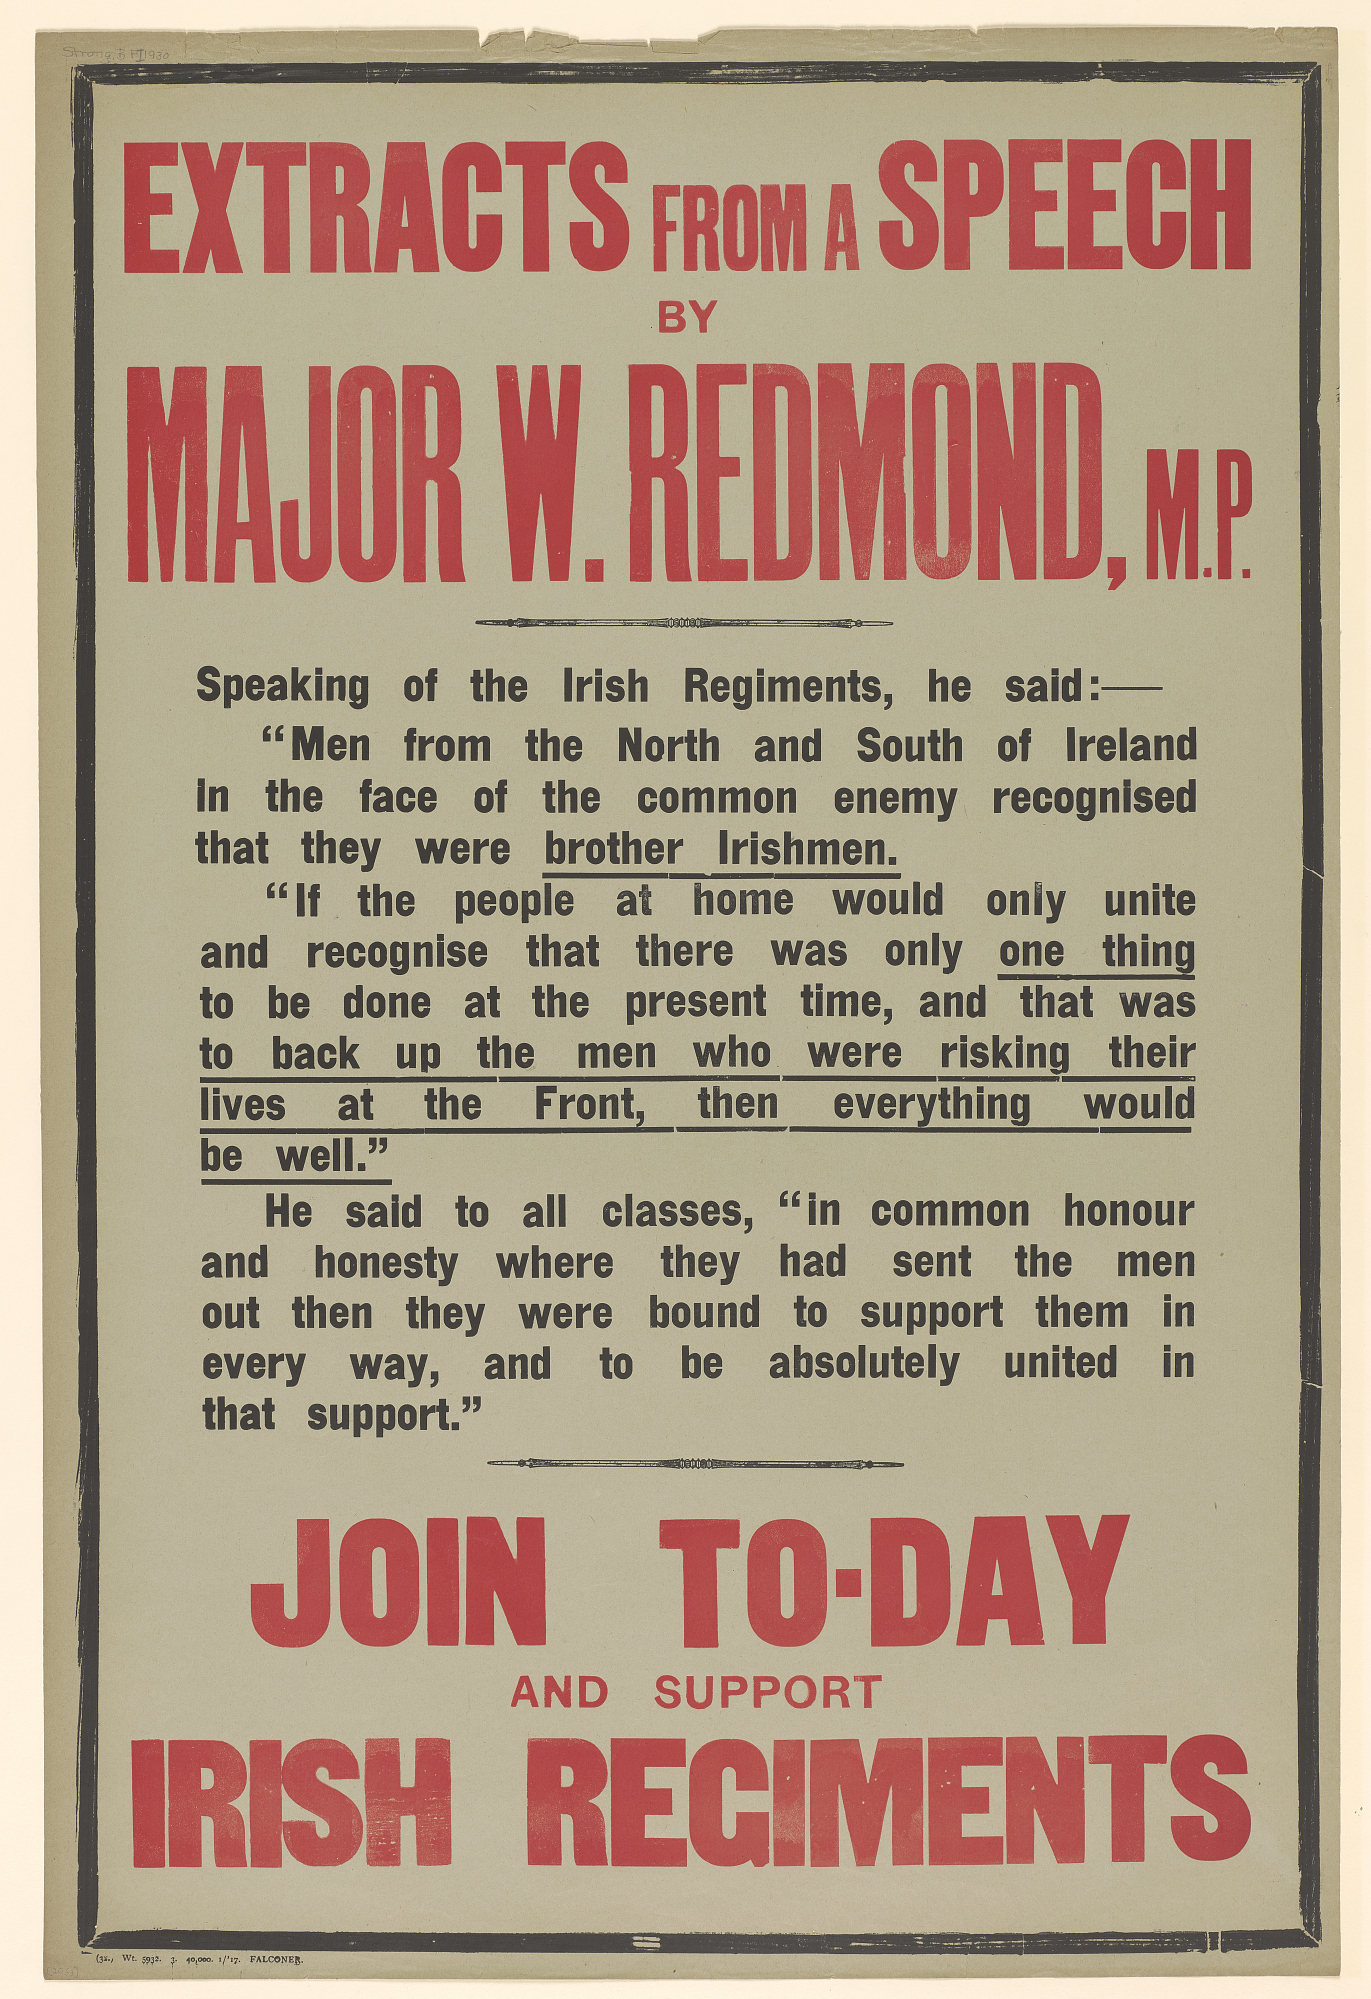 Extracts From a Speech by Major W. Redmond, M.P. ... Join To-Day and Support Irish Regiments